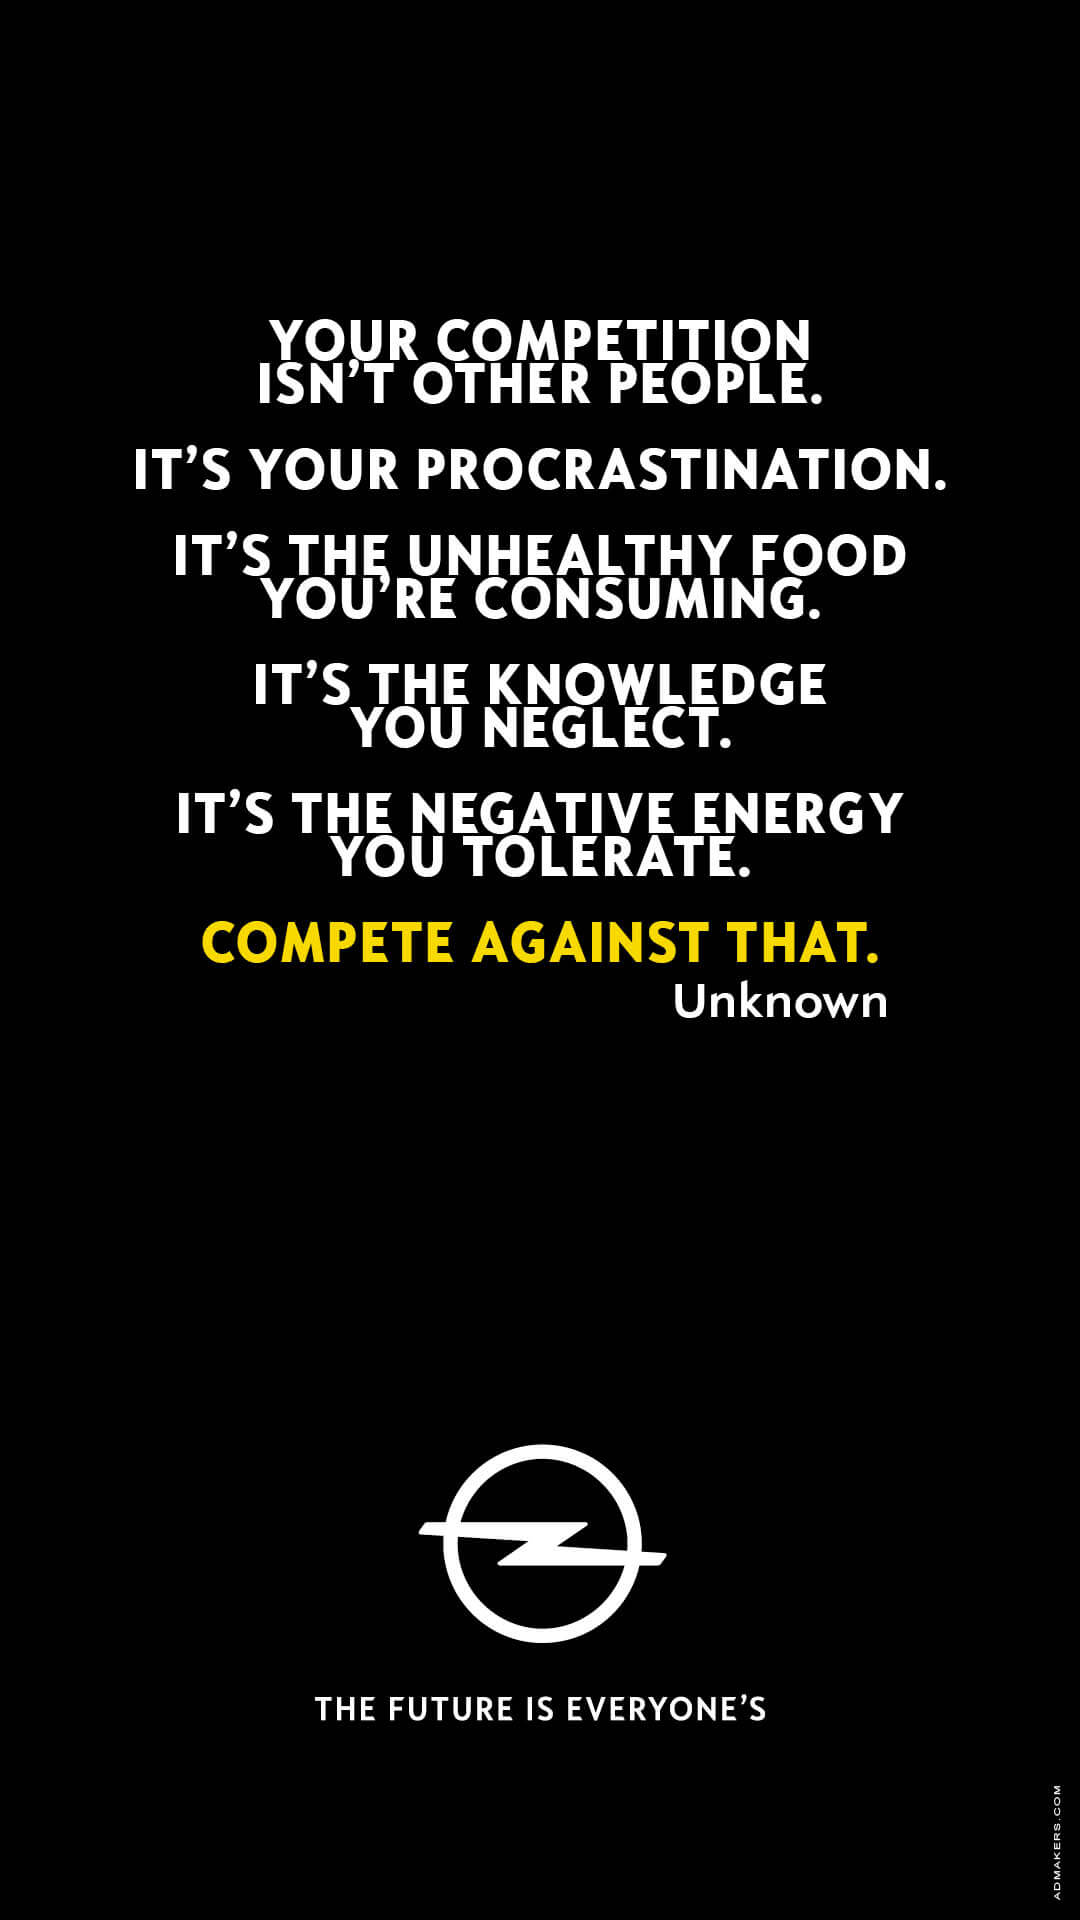 Your competition isn't other people. It's your procrastination. It's the unhealthy food you're consuming. It's the knowledge you neglect. It's the negative energy you tolerate. Compete against that.